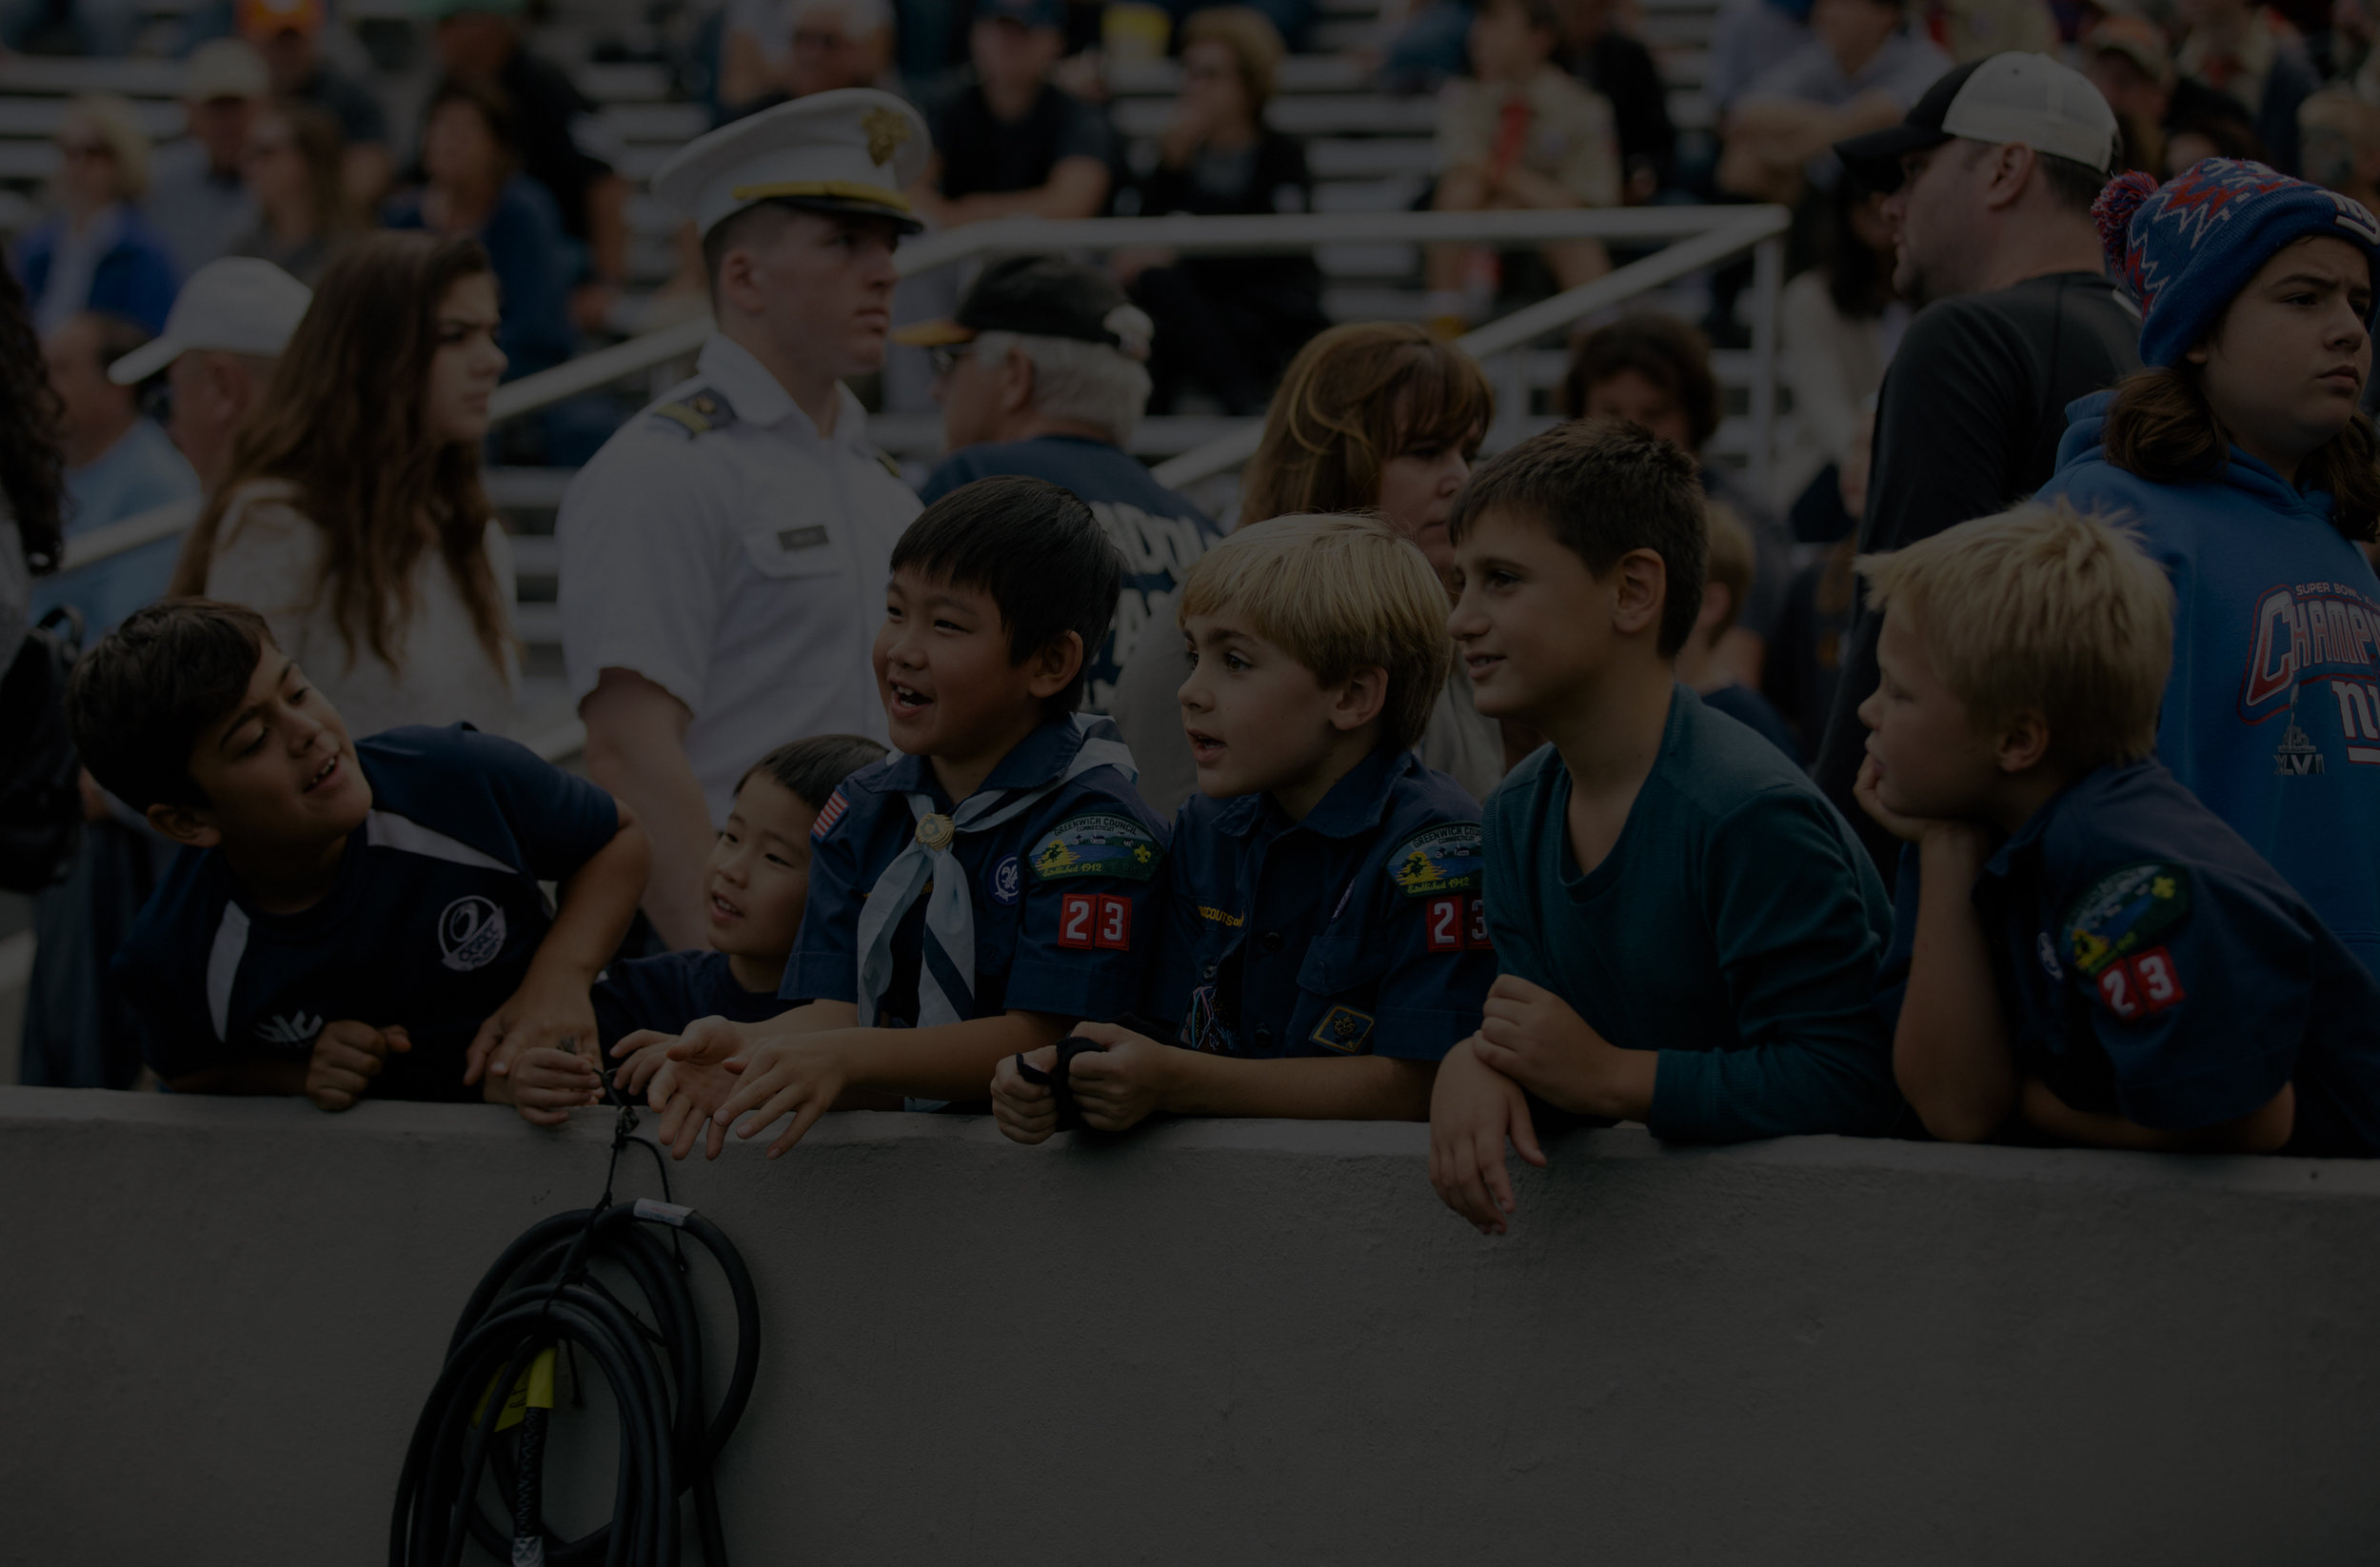 Get Tickets Now Ticket Information Season Ticket Membership Group Tickets  Mini Plans Single Game Tickets 2019 Army-Navy Tickets Presale Dates Contact  Us ... 9ef97f91e